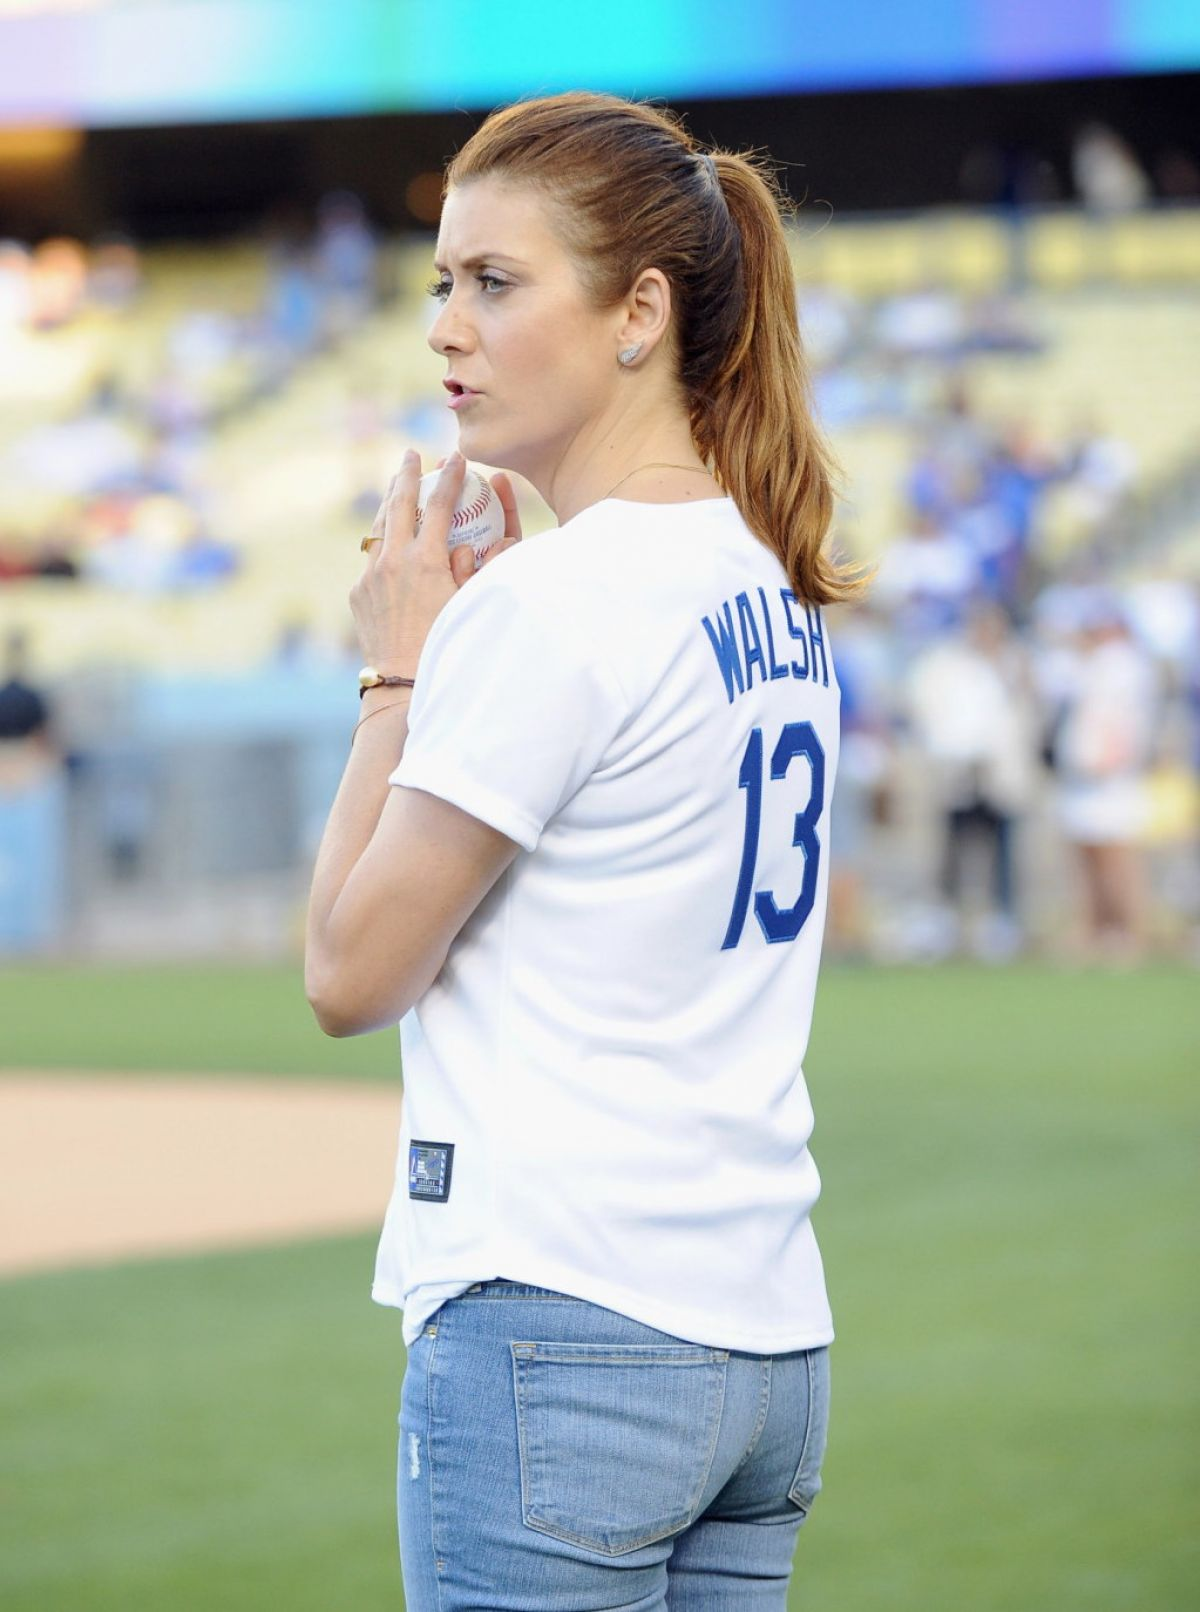 KATE WALSH Throwing out the First Pitch at the Dodgers Game